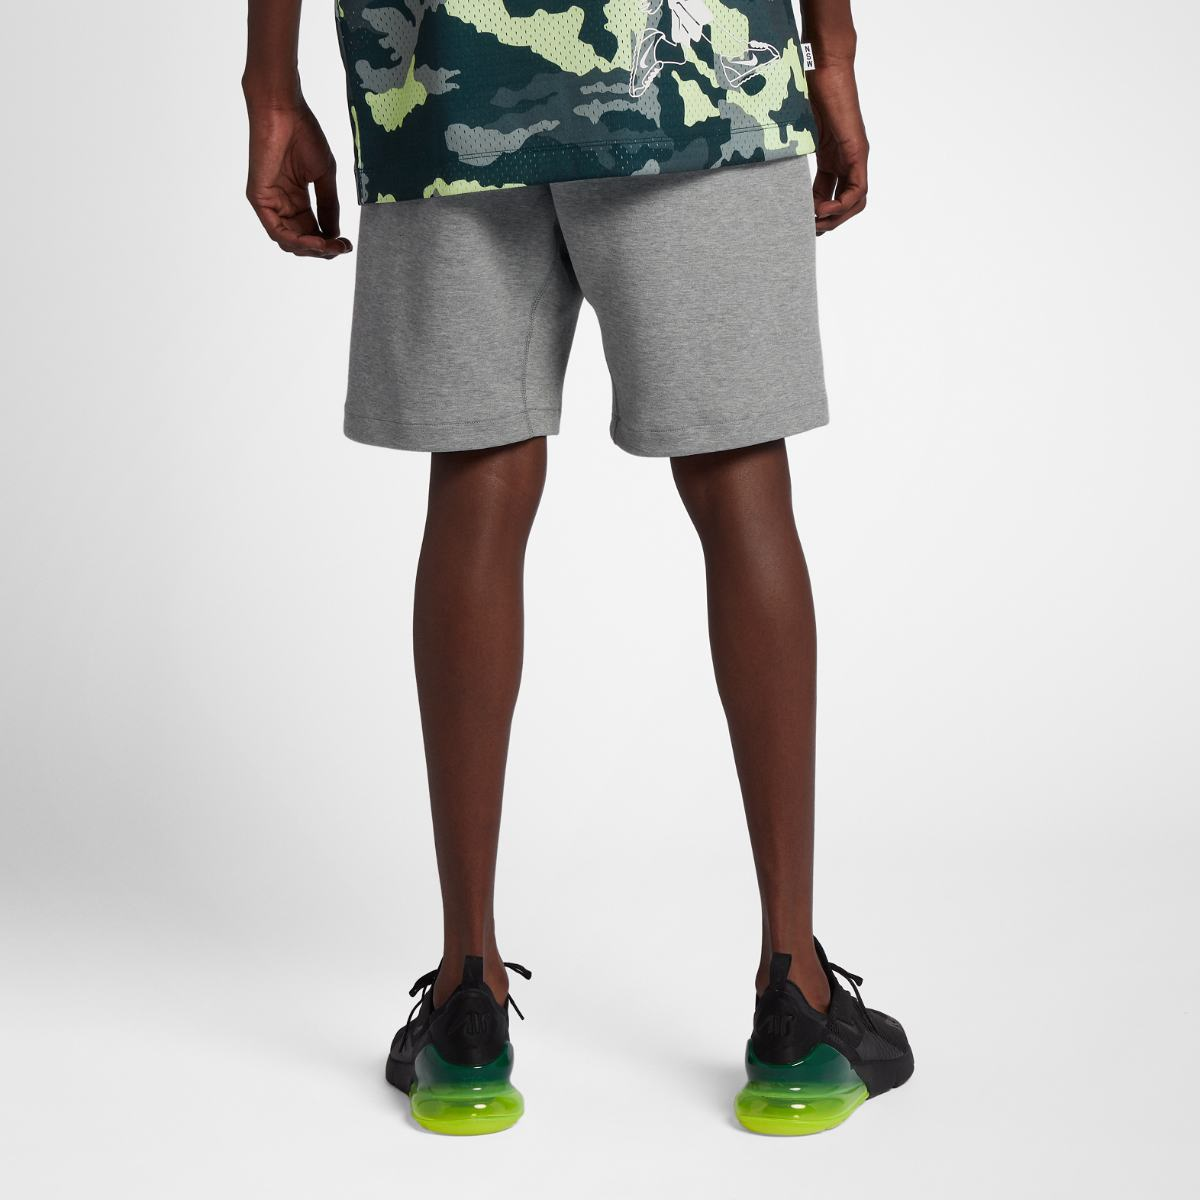 Шорты Nike M NSW TCH FLC SHORT